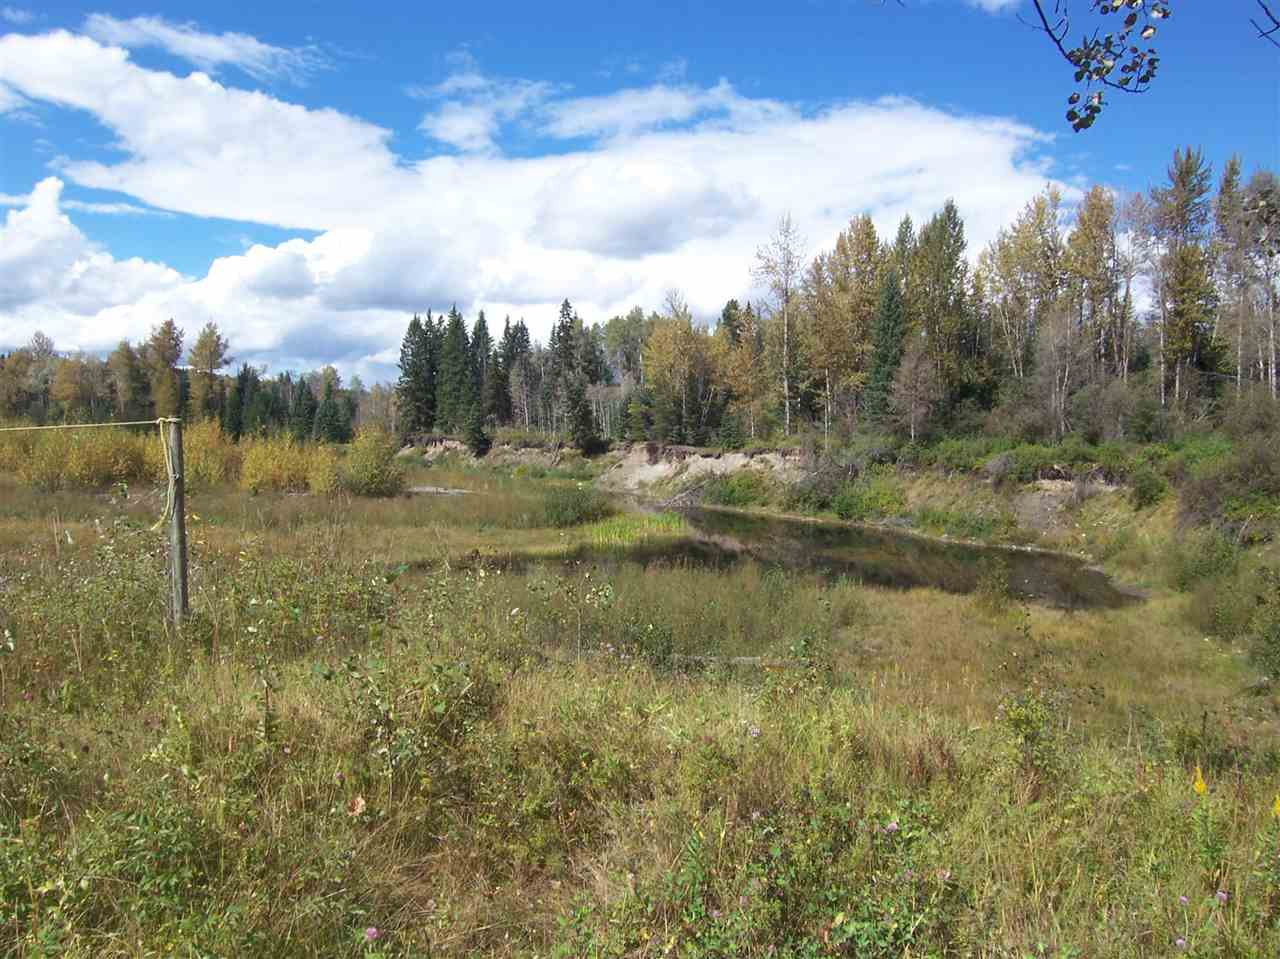 Photo 7: Photos: 4682 BARKERVILLE Highway in Quesnel: Quesnel - Rural North Land for sale (Quesnel (Zone 28))  : MLS®# R2105293